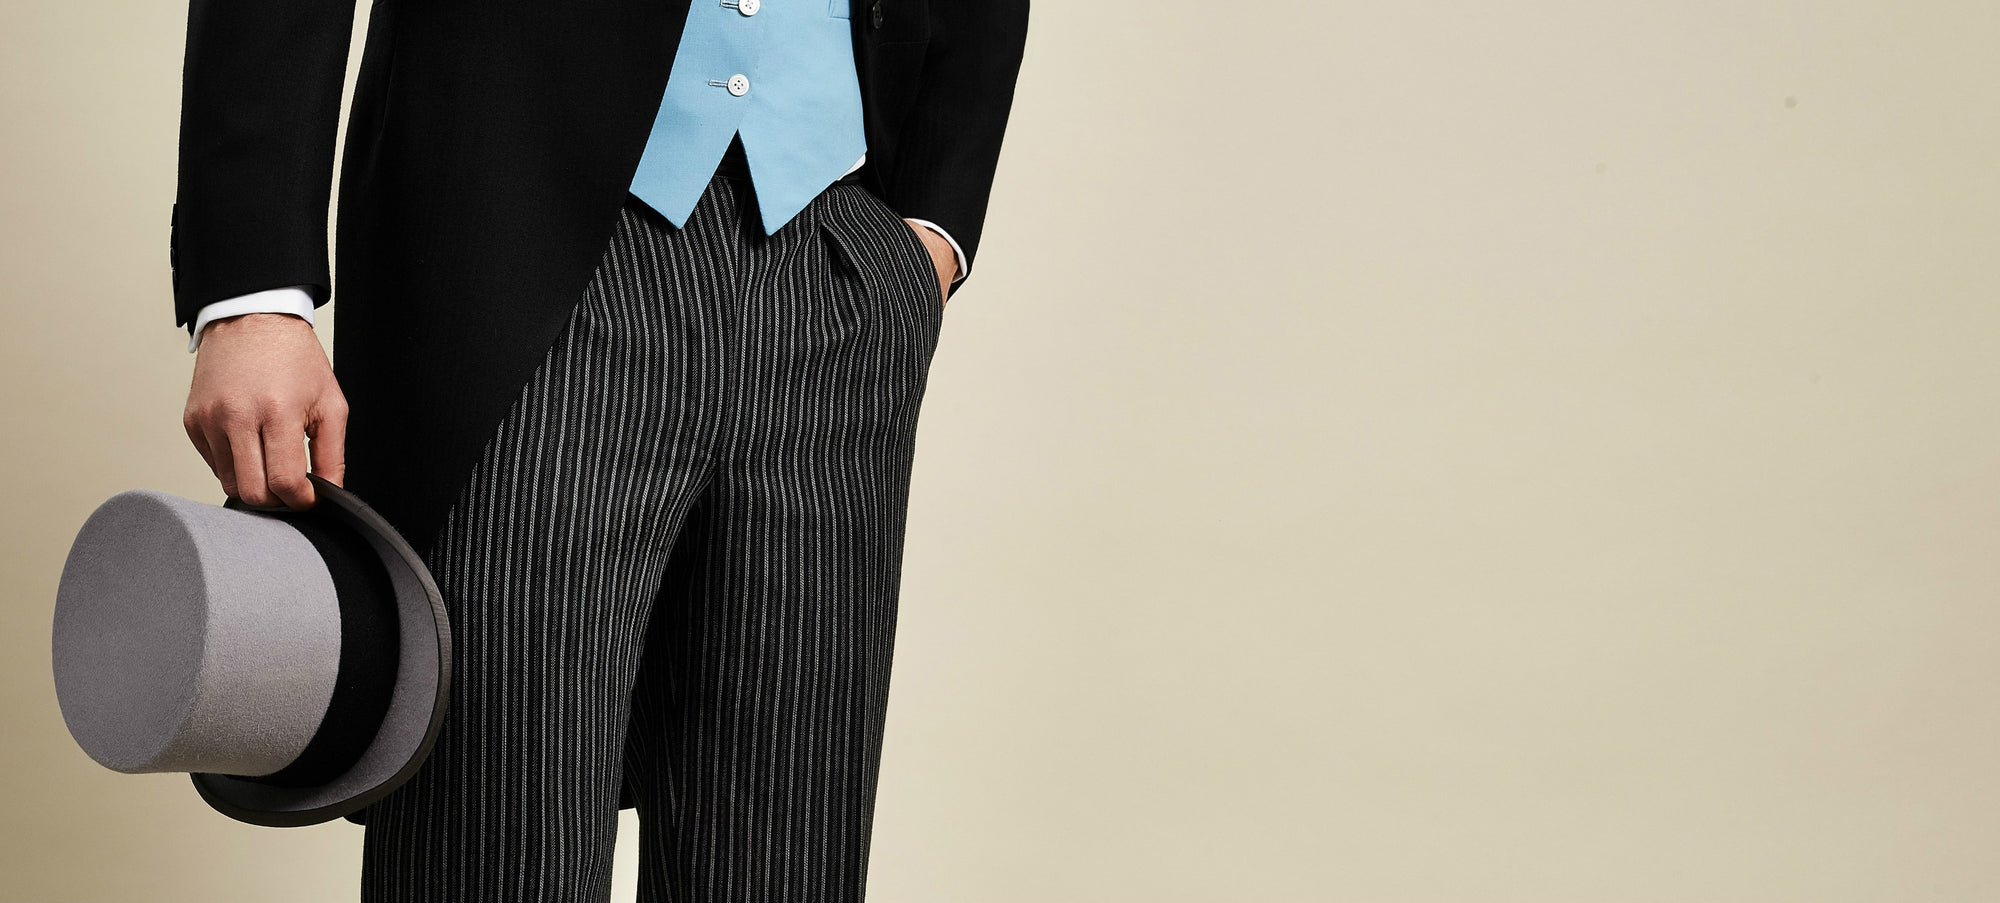 Top Hats & Cokes (Bowler hats)